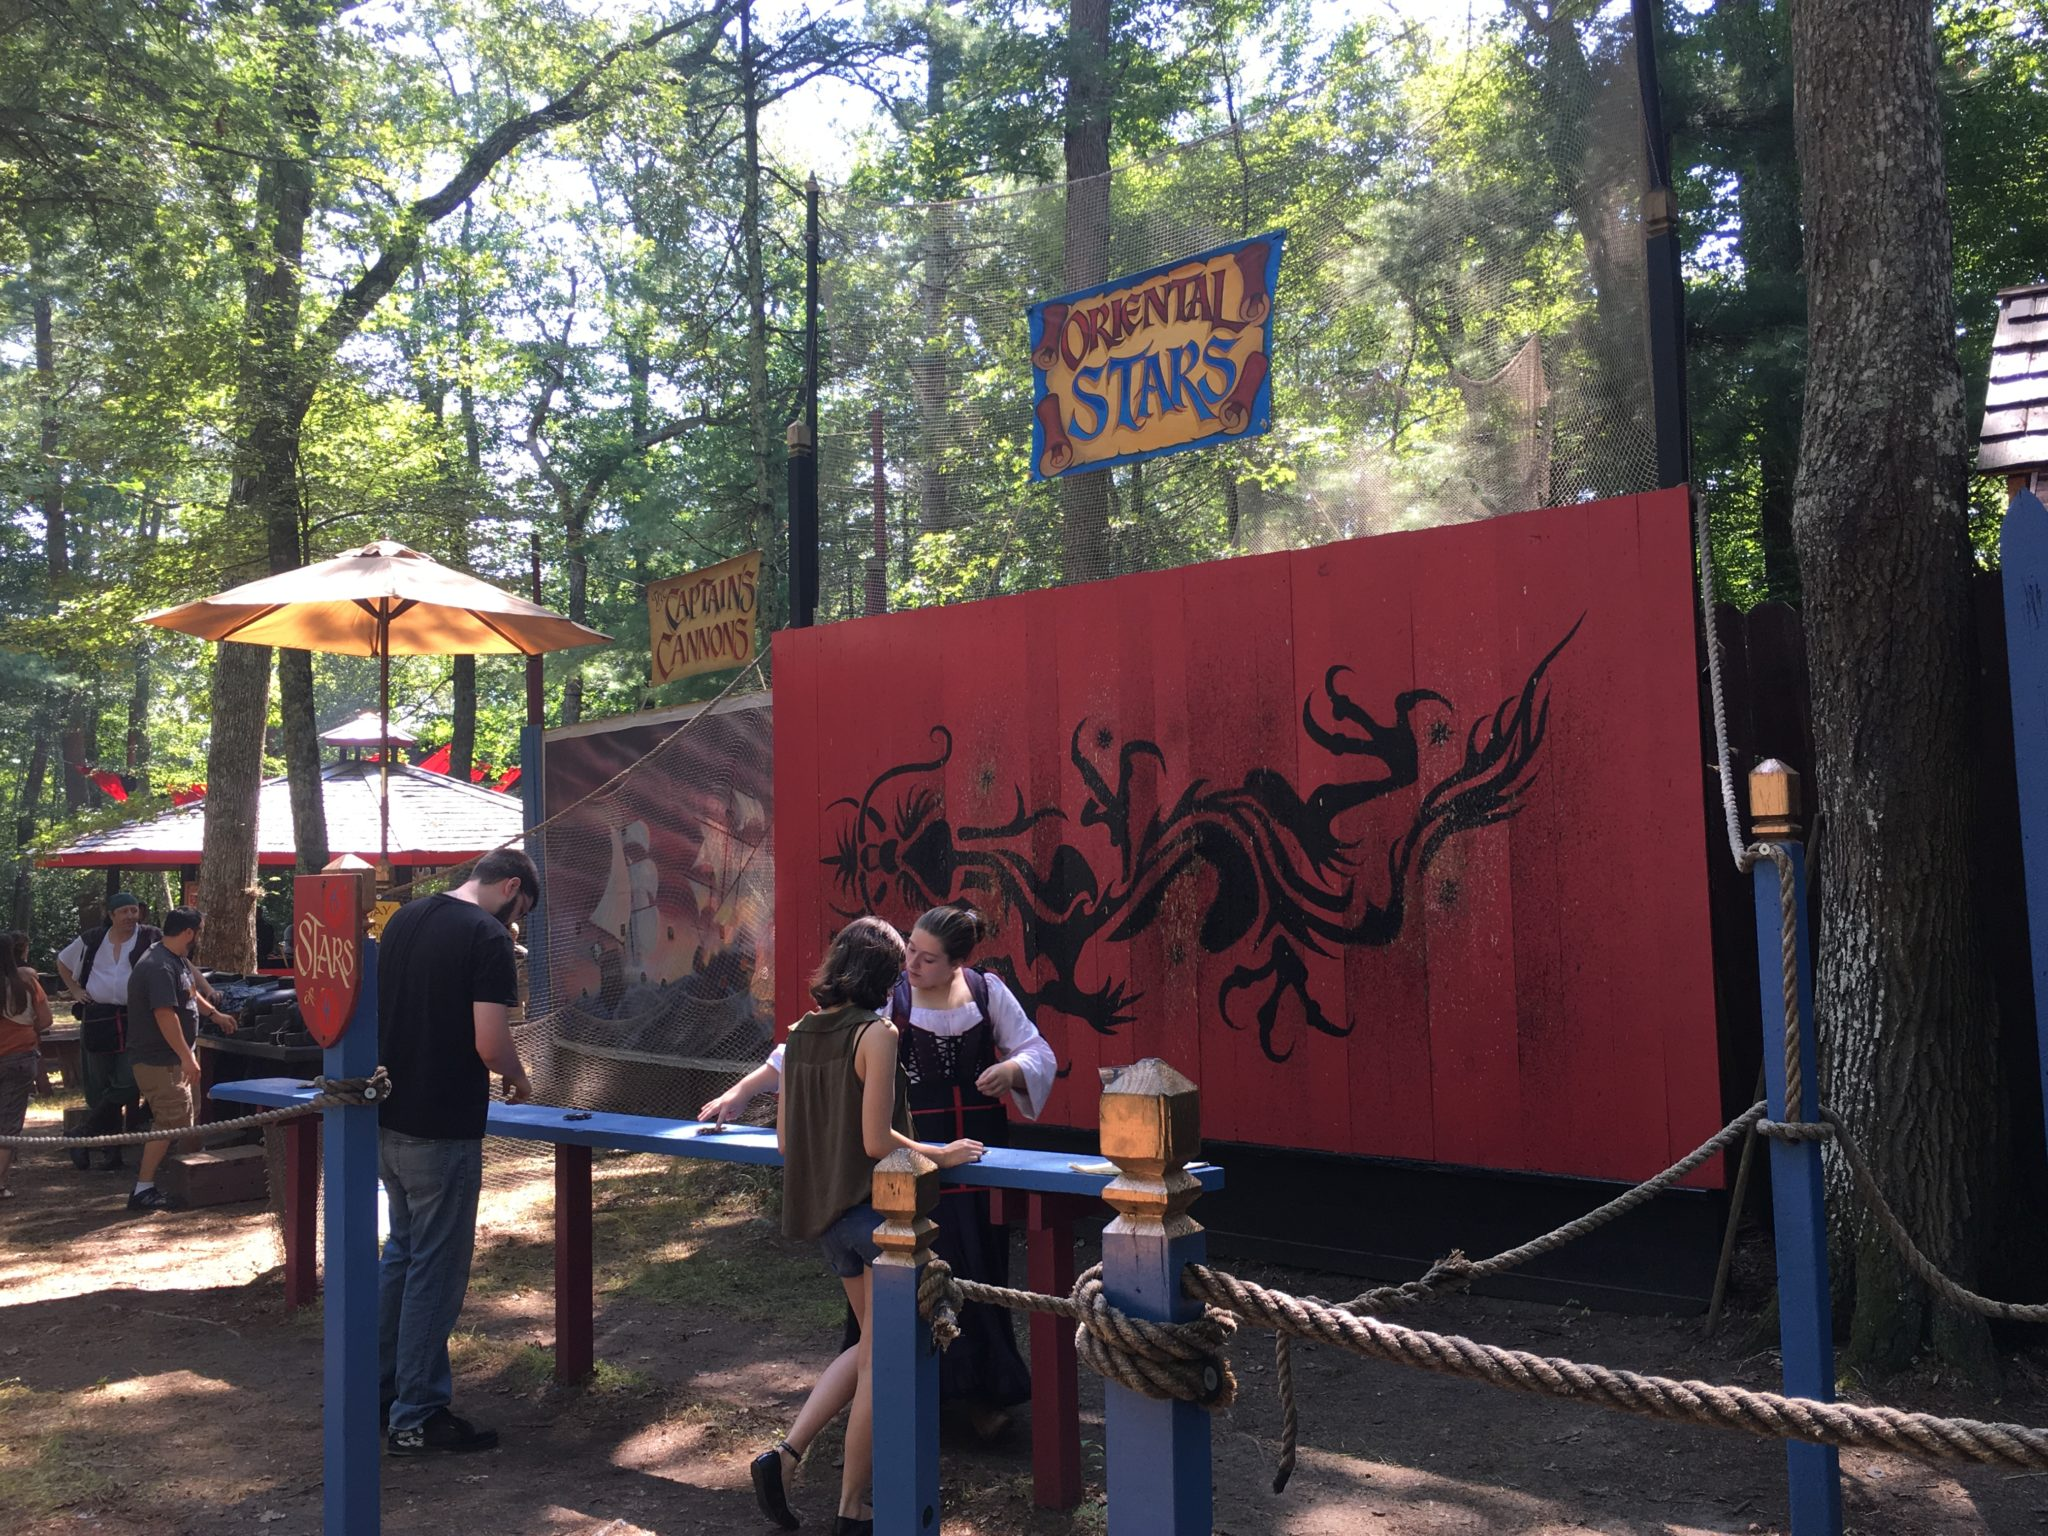 At King Richard's Faire you can try your hand at throwing ninja stars!